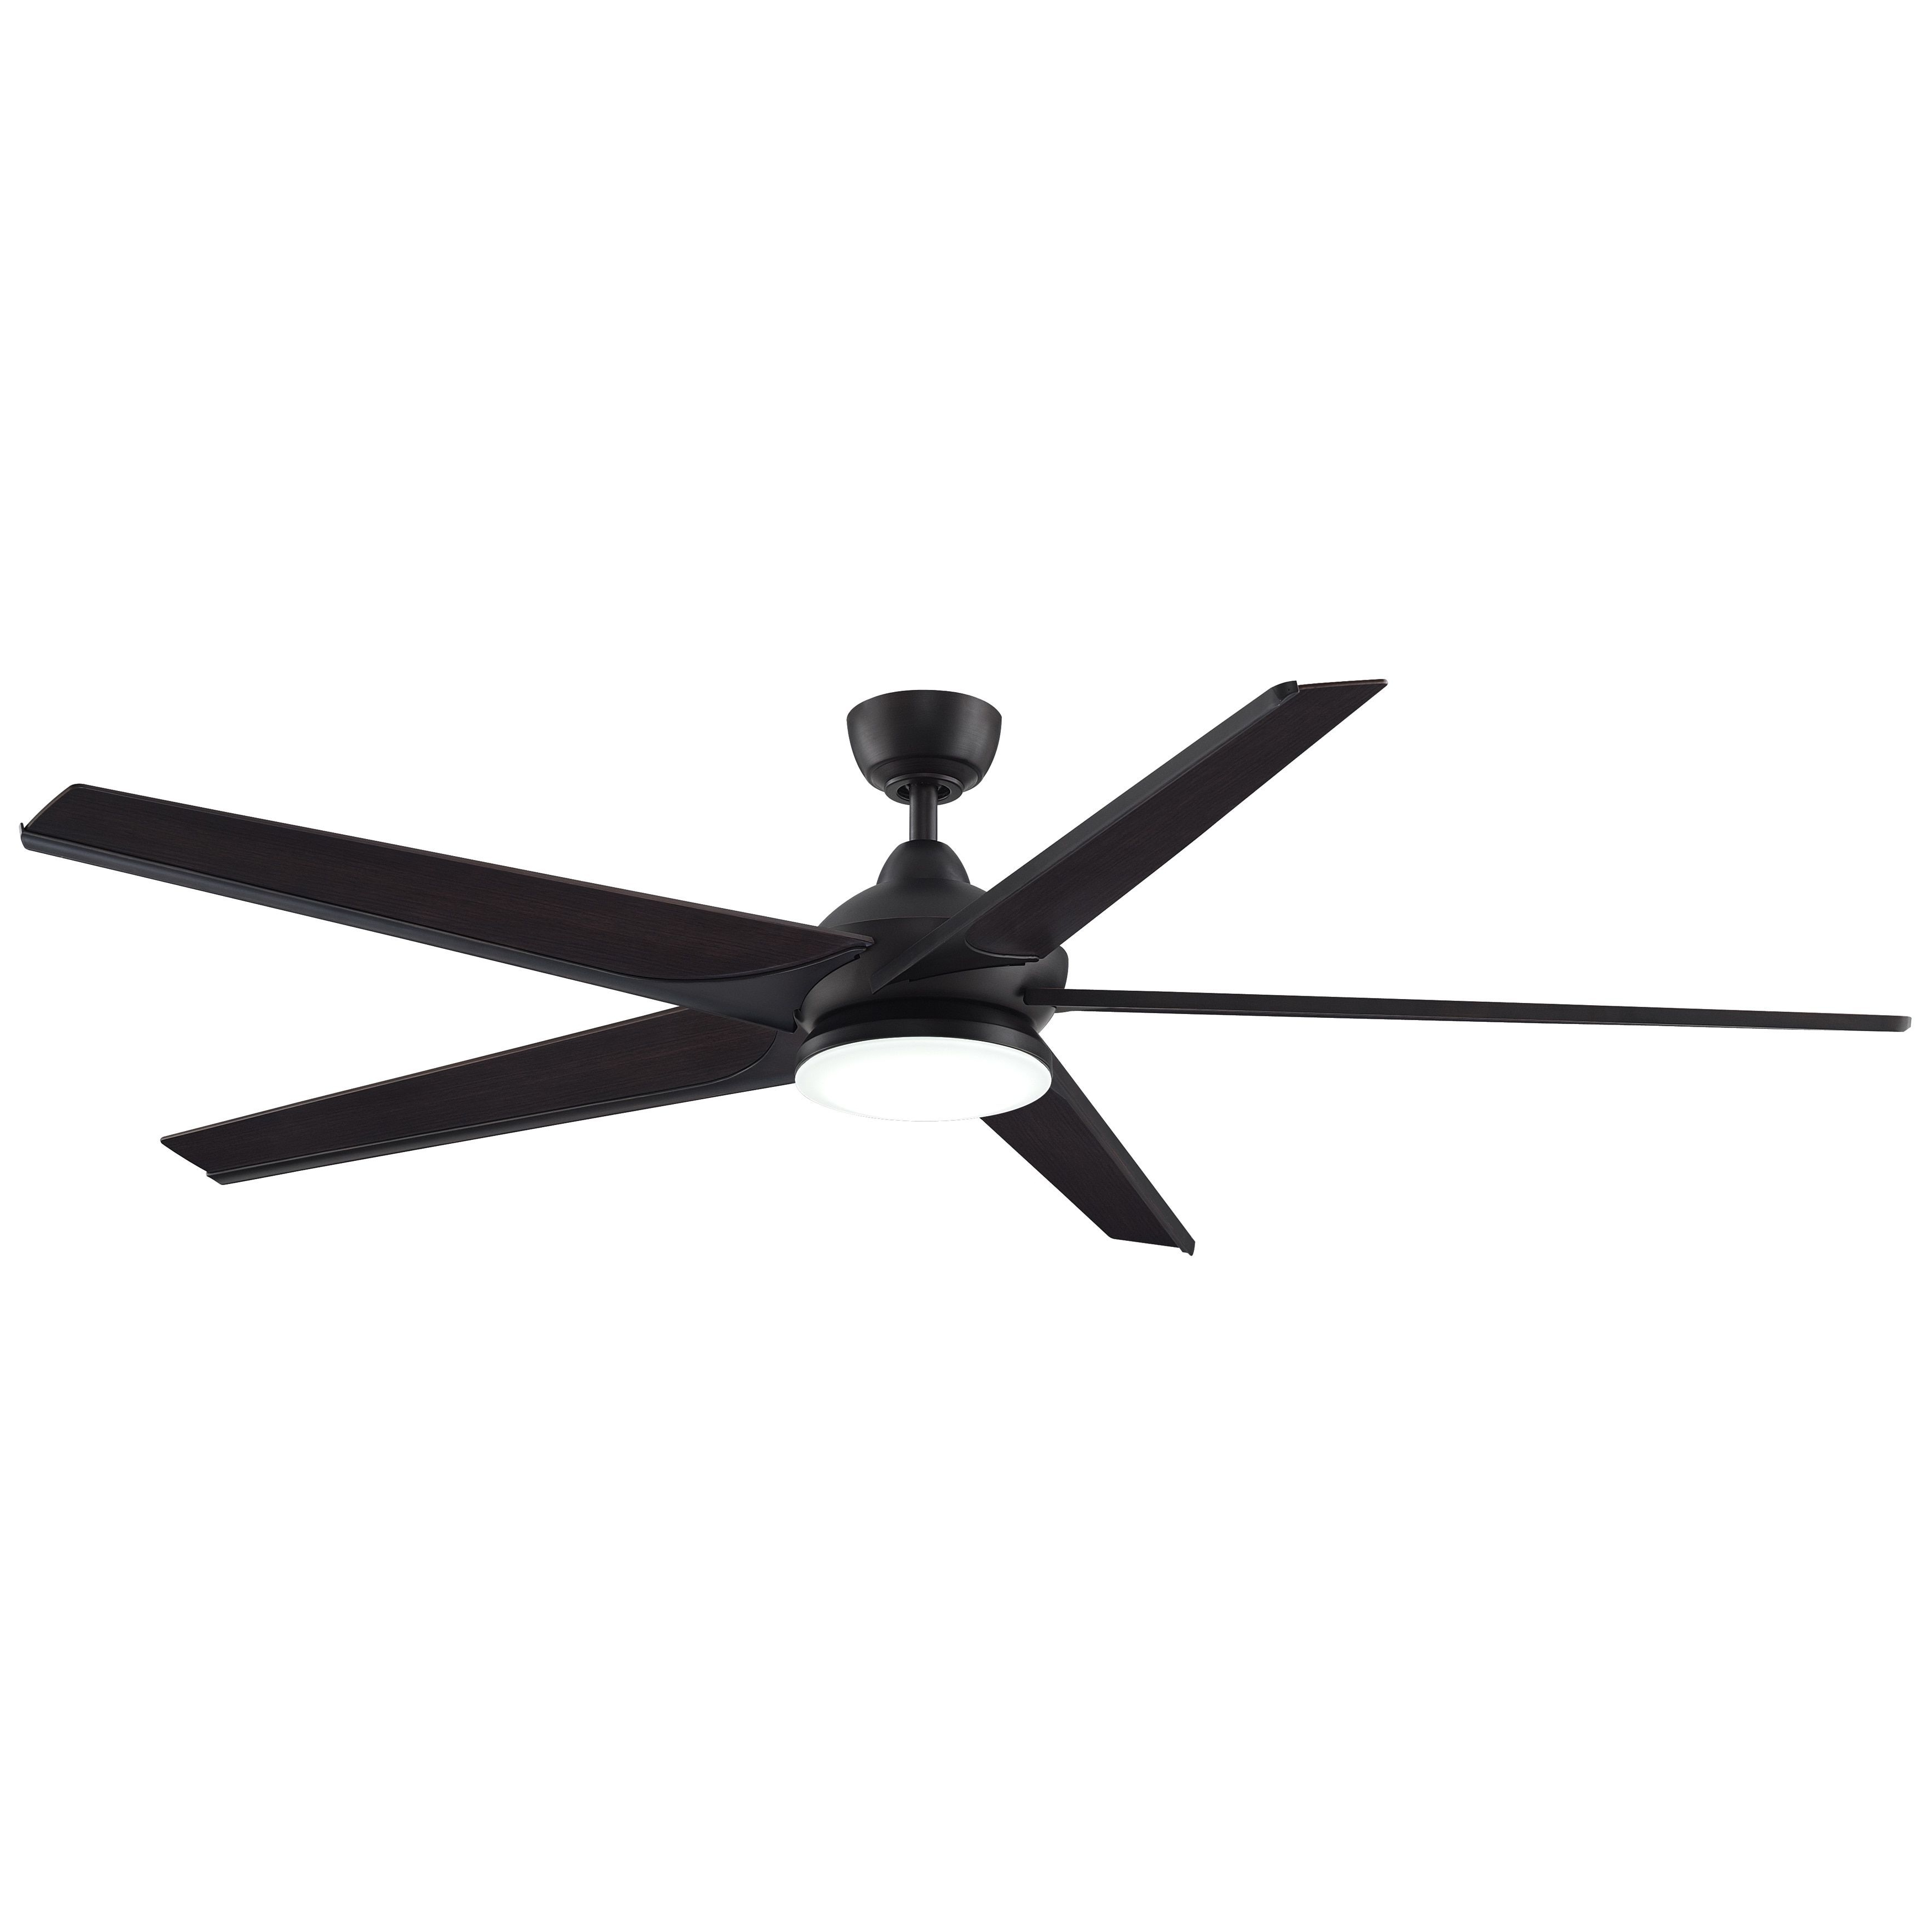 2018 Subtle – 72 Inch Ceiling Fan With Led (Dark Bronze With Bourbon Wood Regarding 72 Inch Outdoor Ceiling Fans With Light (Gallery 6 of 20)